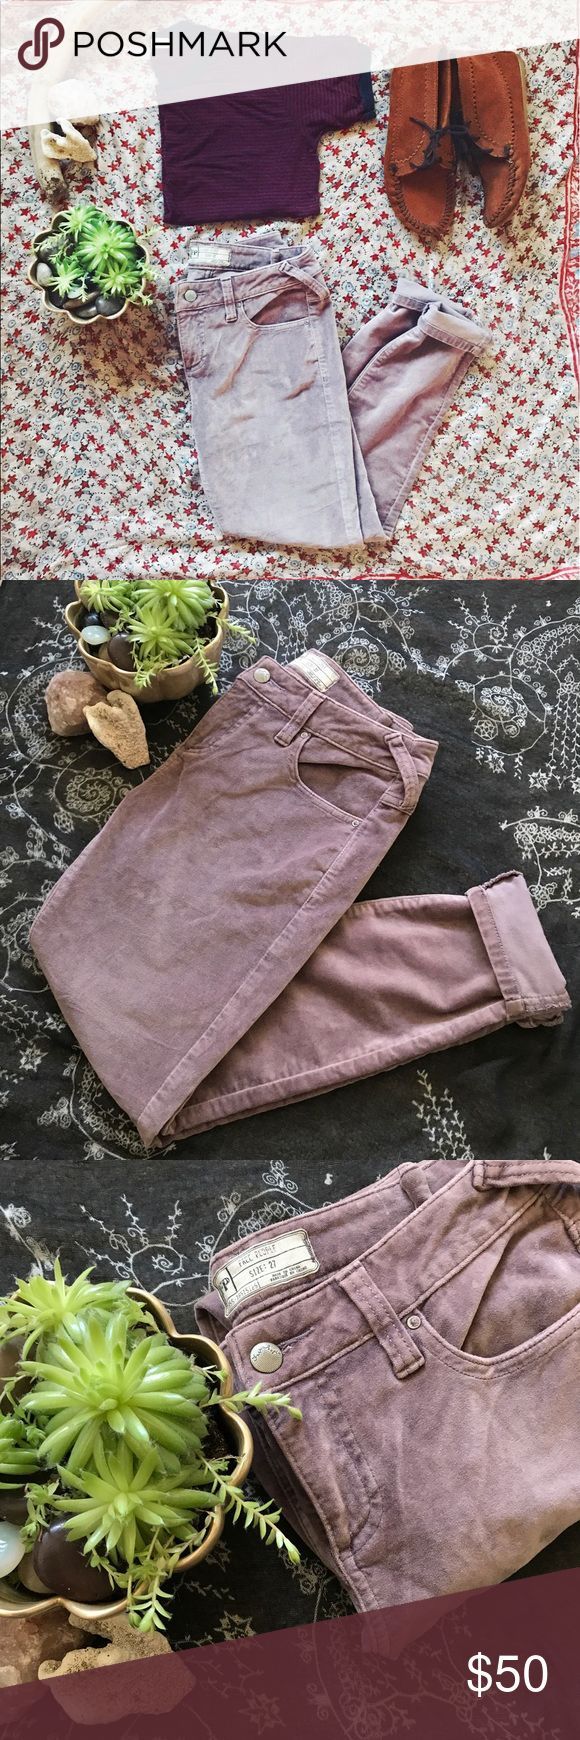 ☀️1 HOUR SALE☀️-Free People Corduroy Skinny Jeans- -Free People Corduroy Skinny Jeans-Dusty Purple-Size 27-Waist: 14 in Leg Length: 27 in. They feel amazing on! ✌️ Free People Jeans Skinny